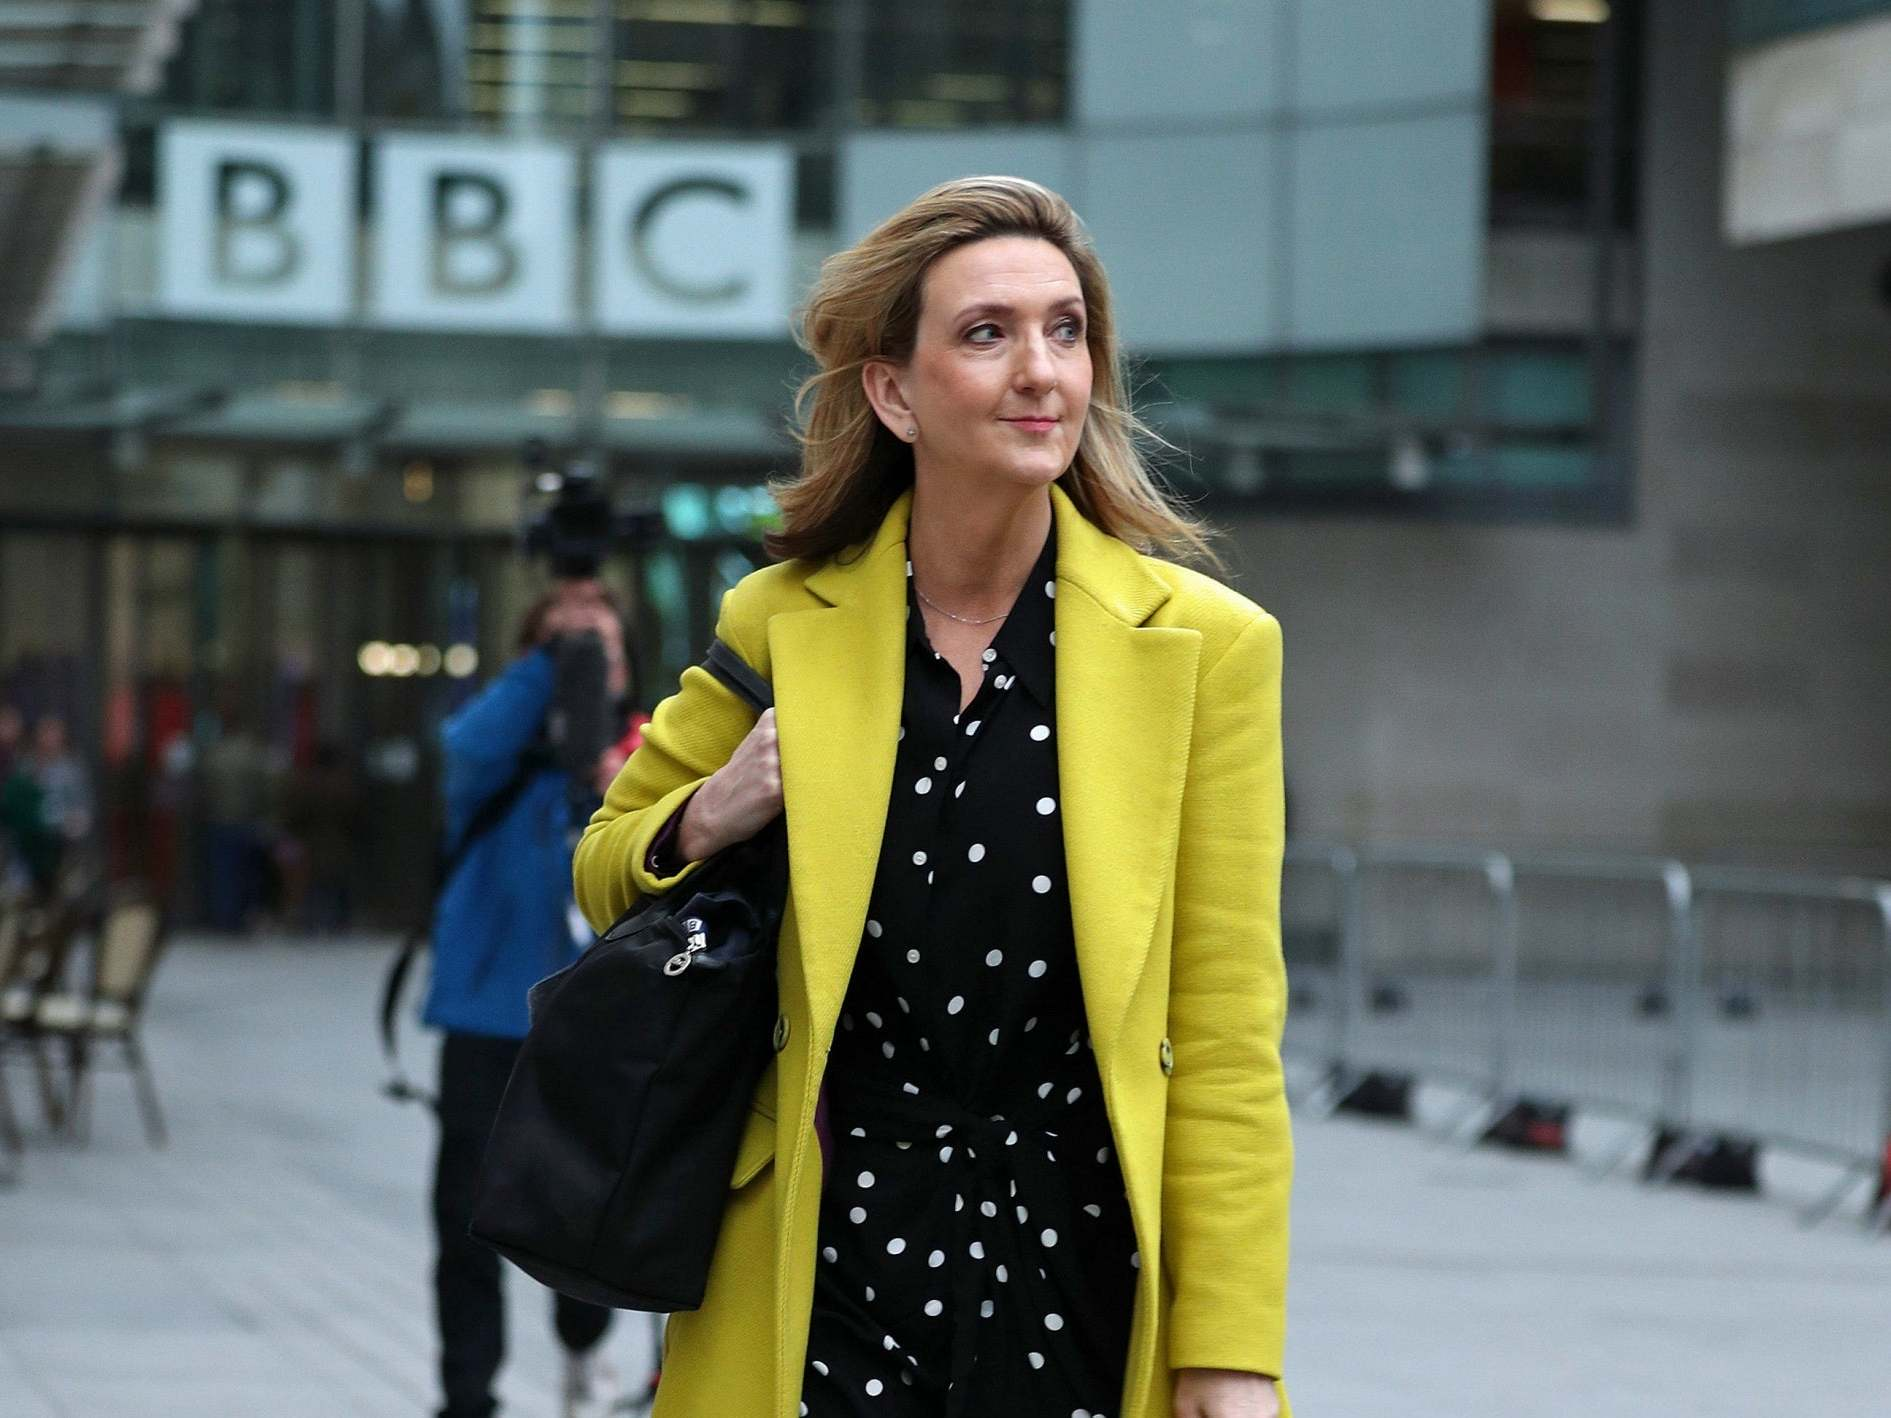 Victoria Derbyshire: Presenter discovered BBC show was cancelled by reading newspaper article